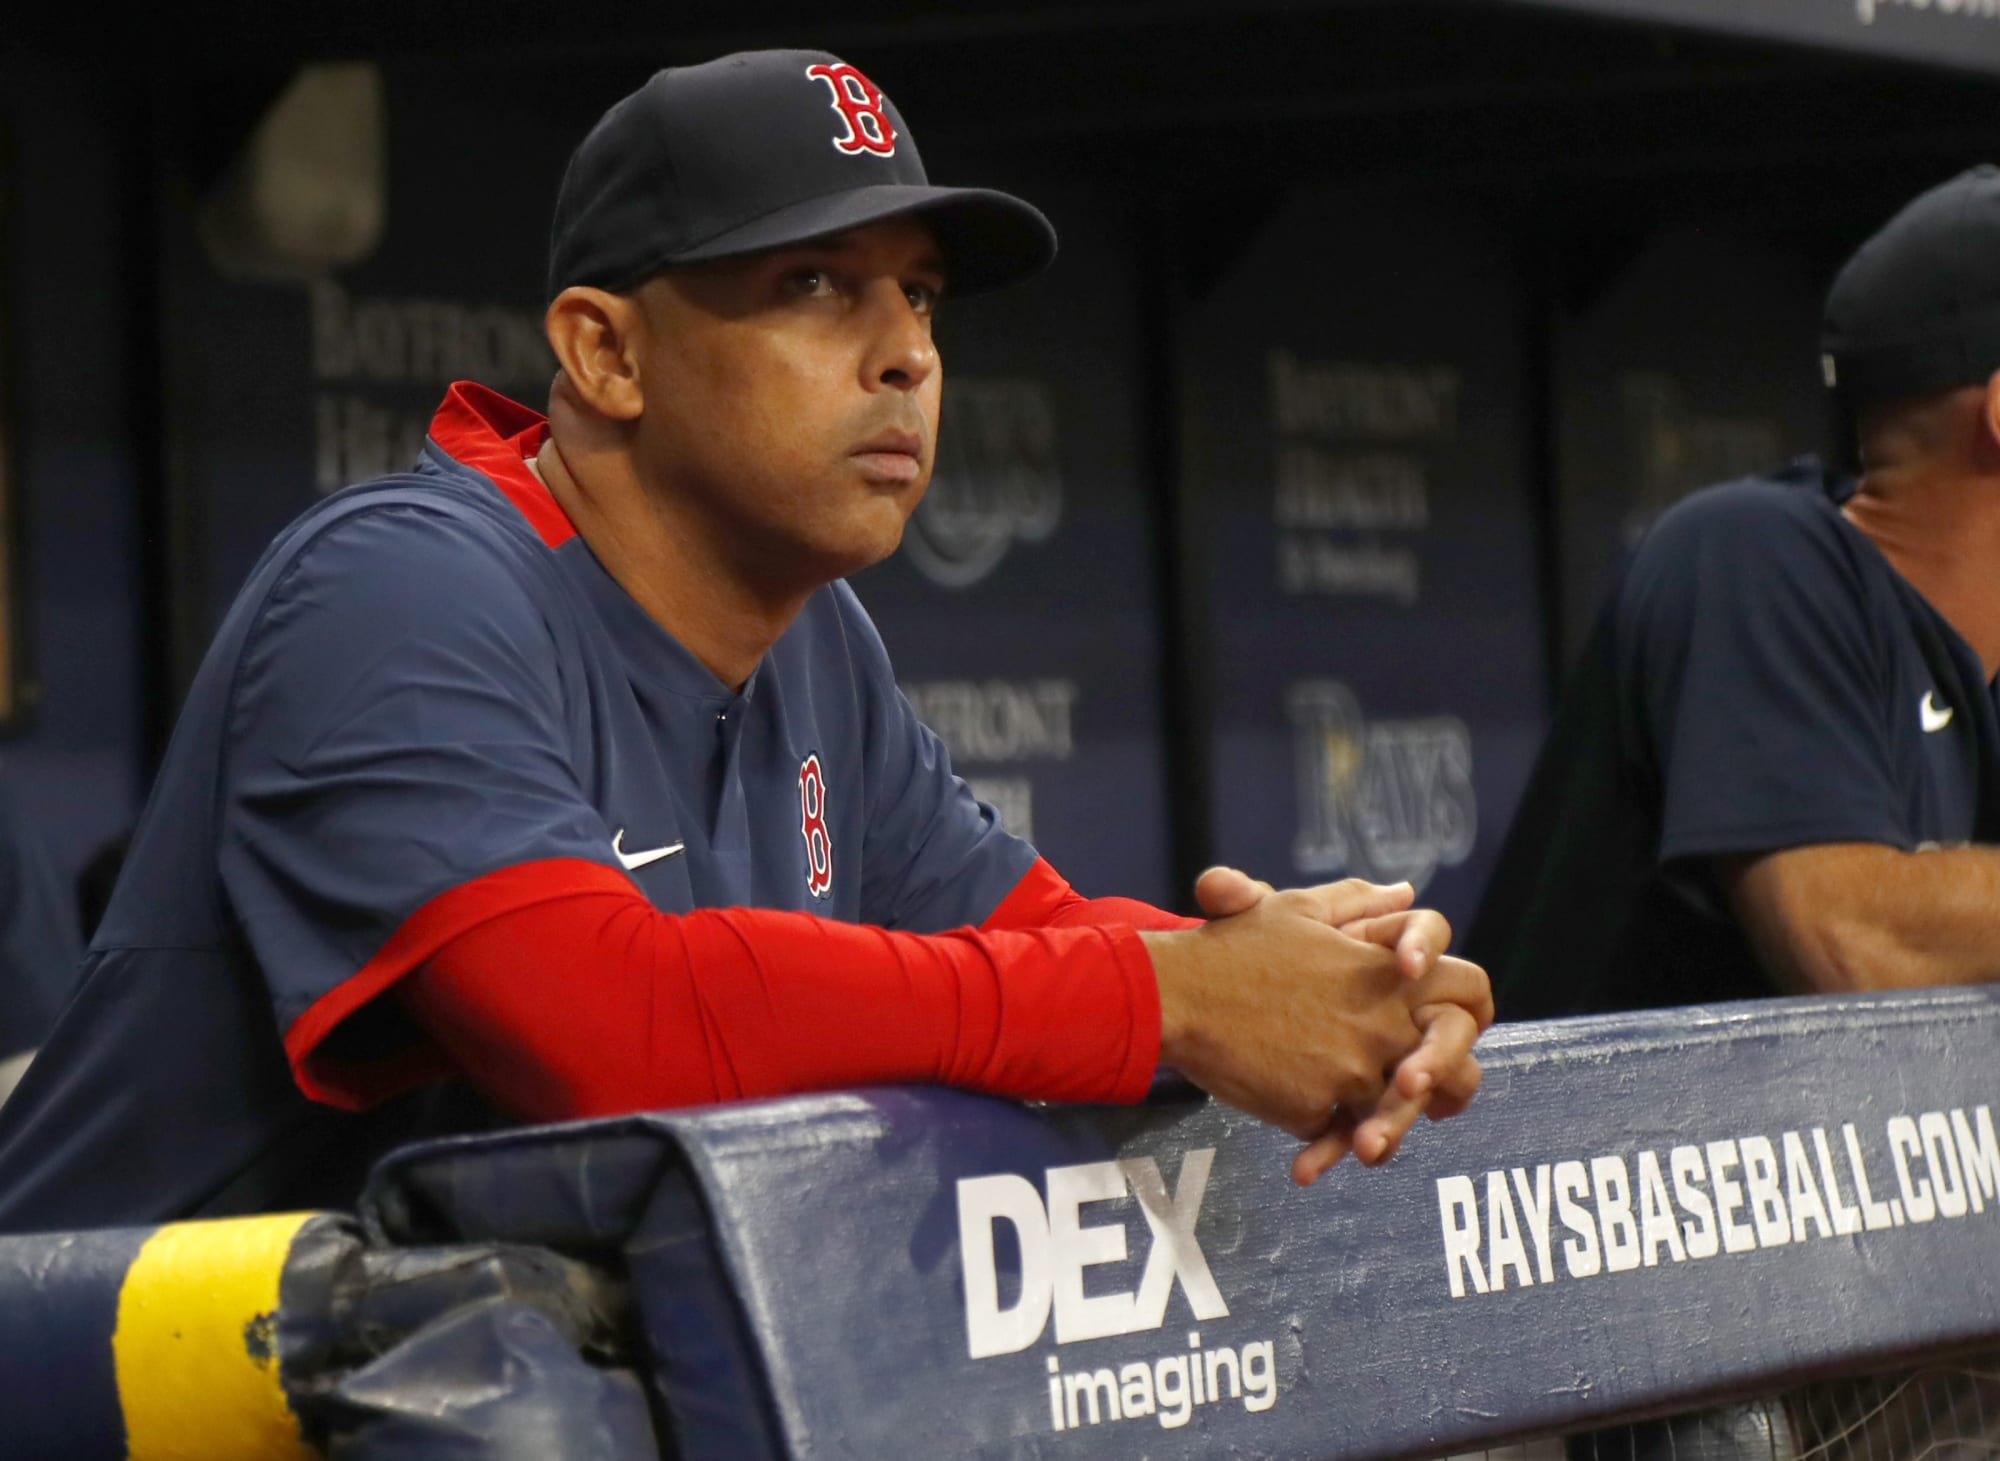 With Xander Bogaerts positive COVID-19 test, Red Sox hit rock bottom thumbnail